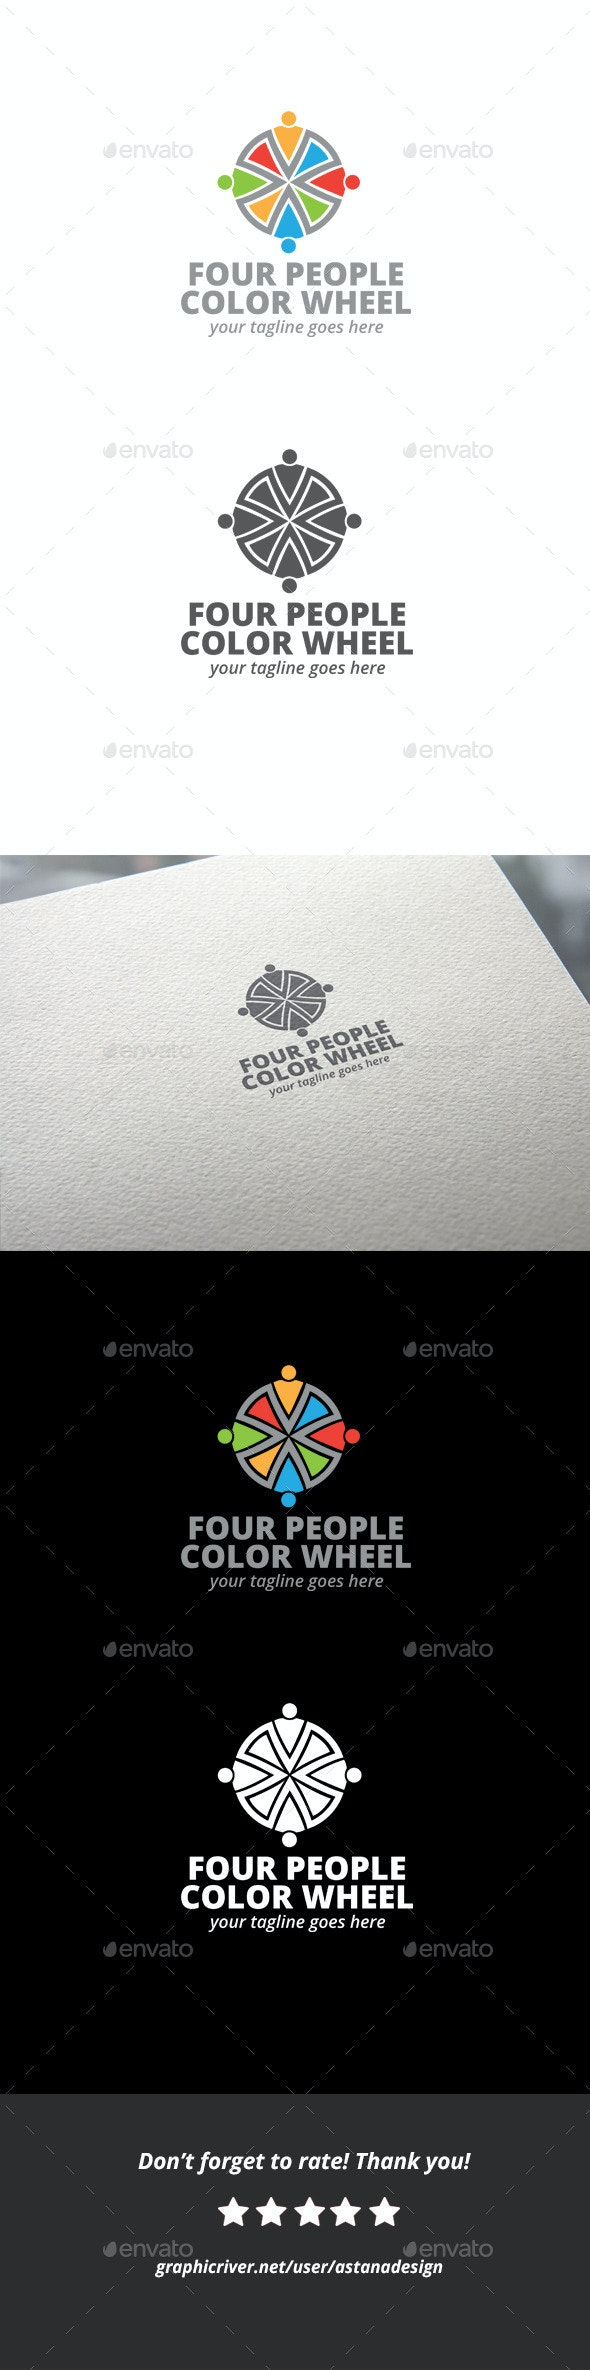 Four People Color Wheel Logo - Objects Logo Templates